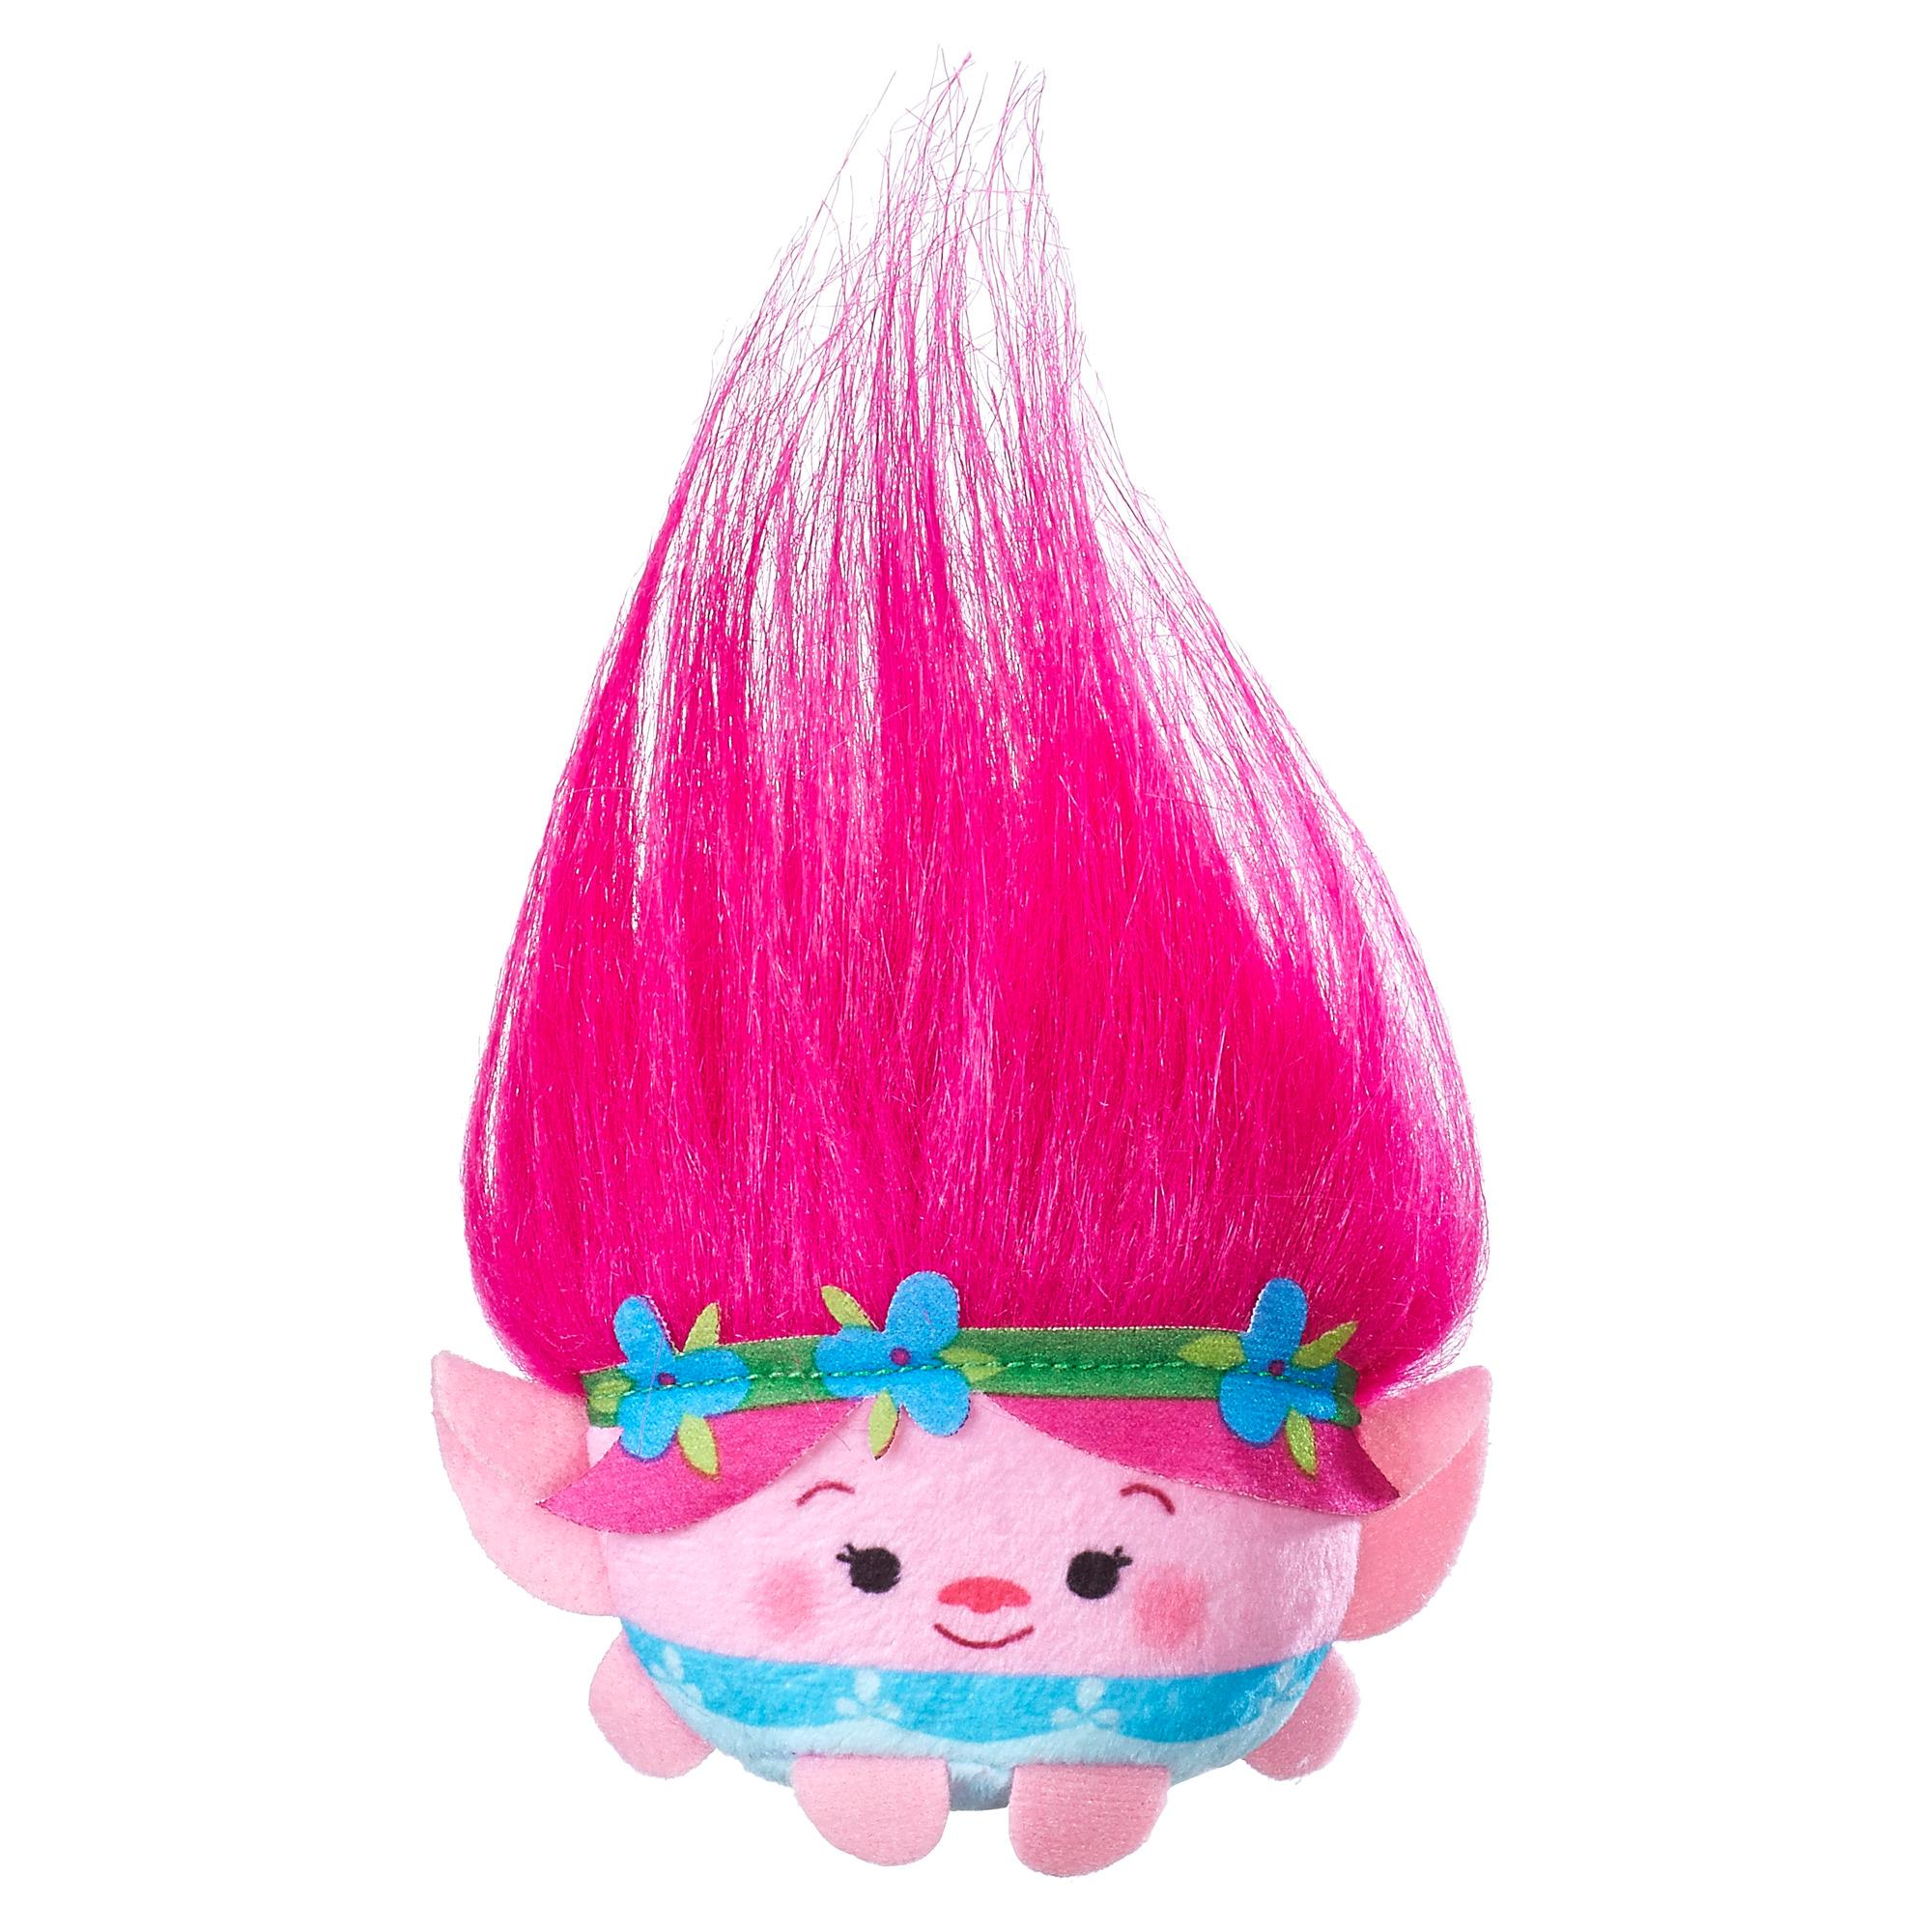 DreamWorks Trolls Poppy Mini Plush